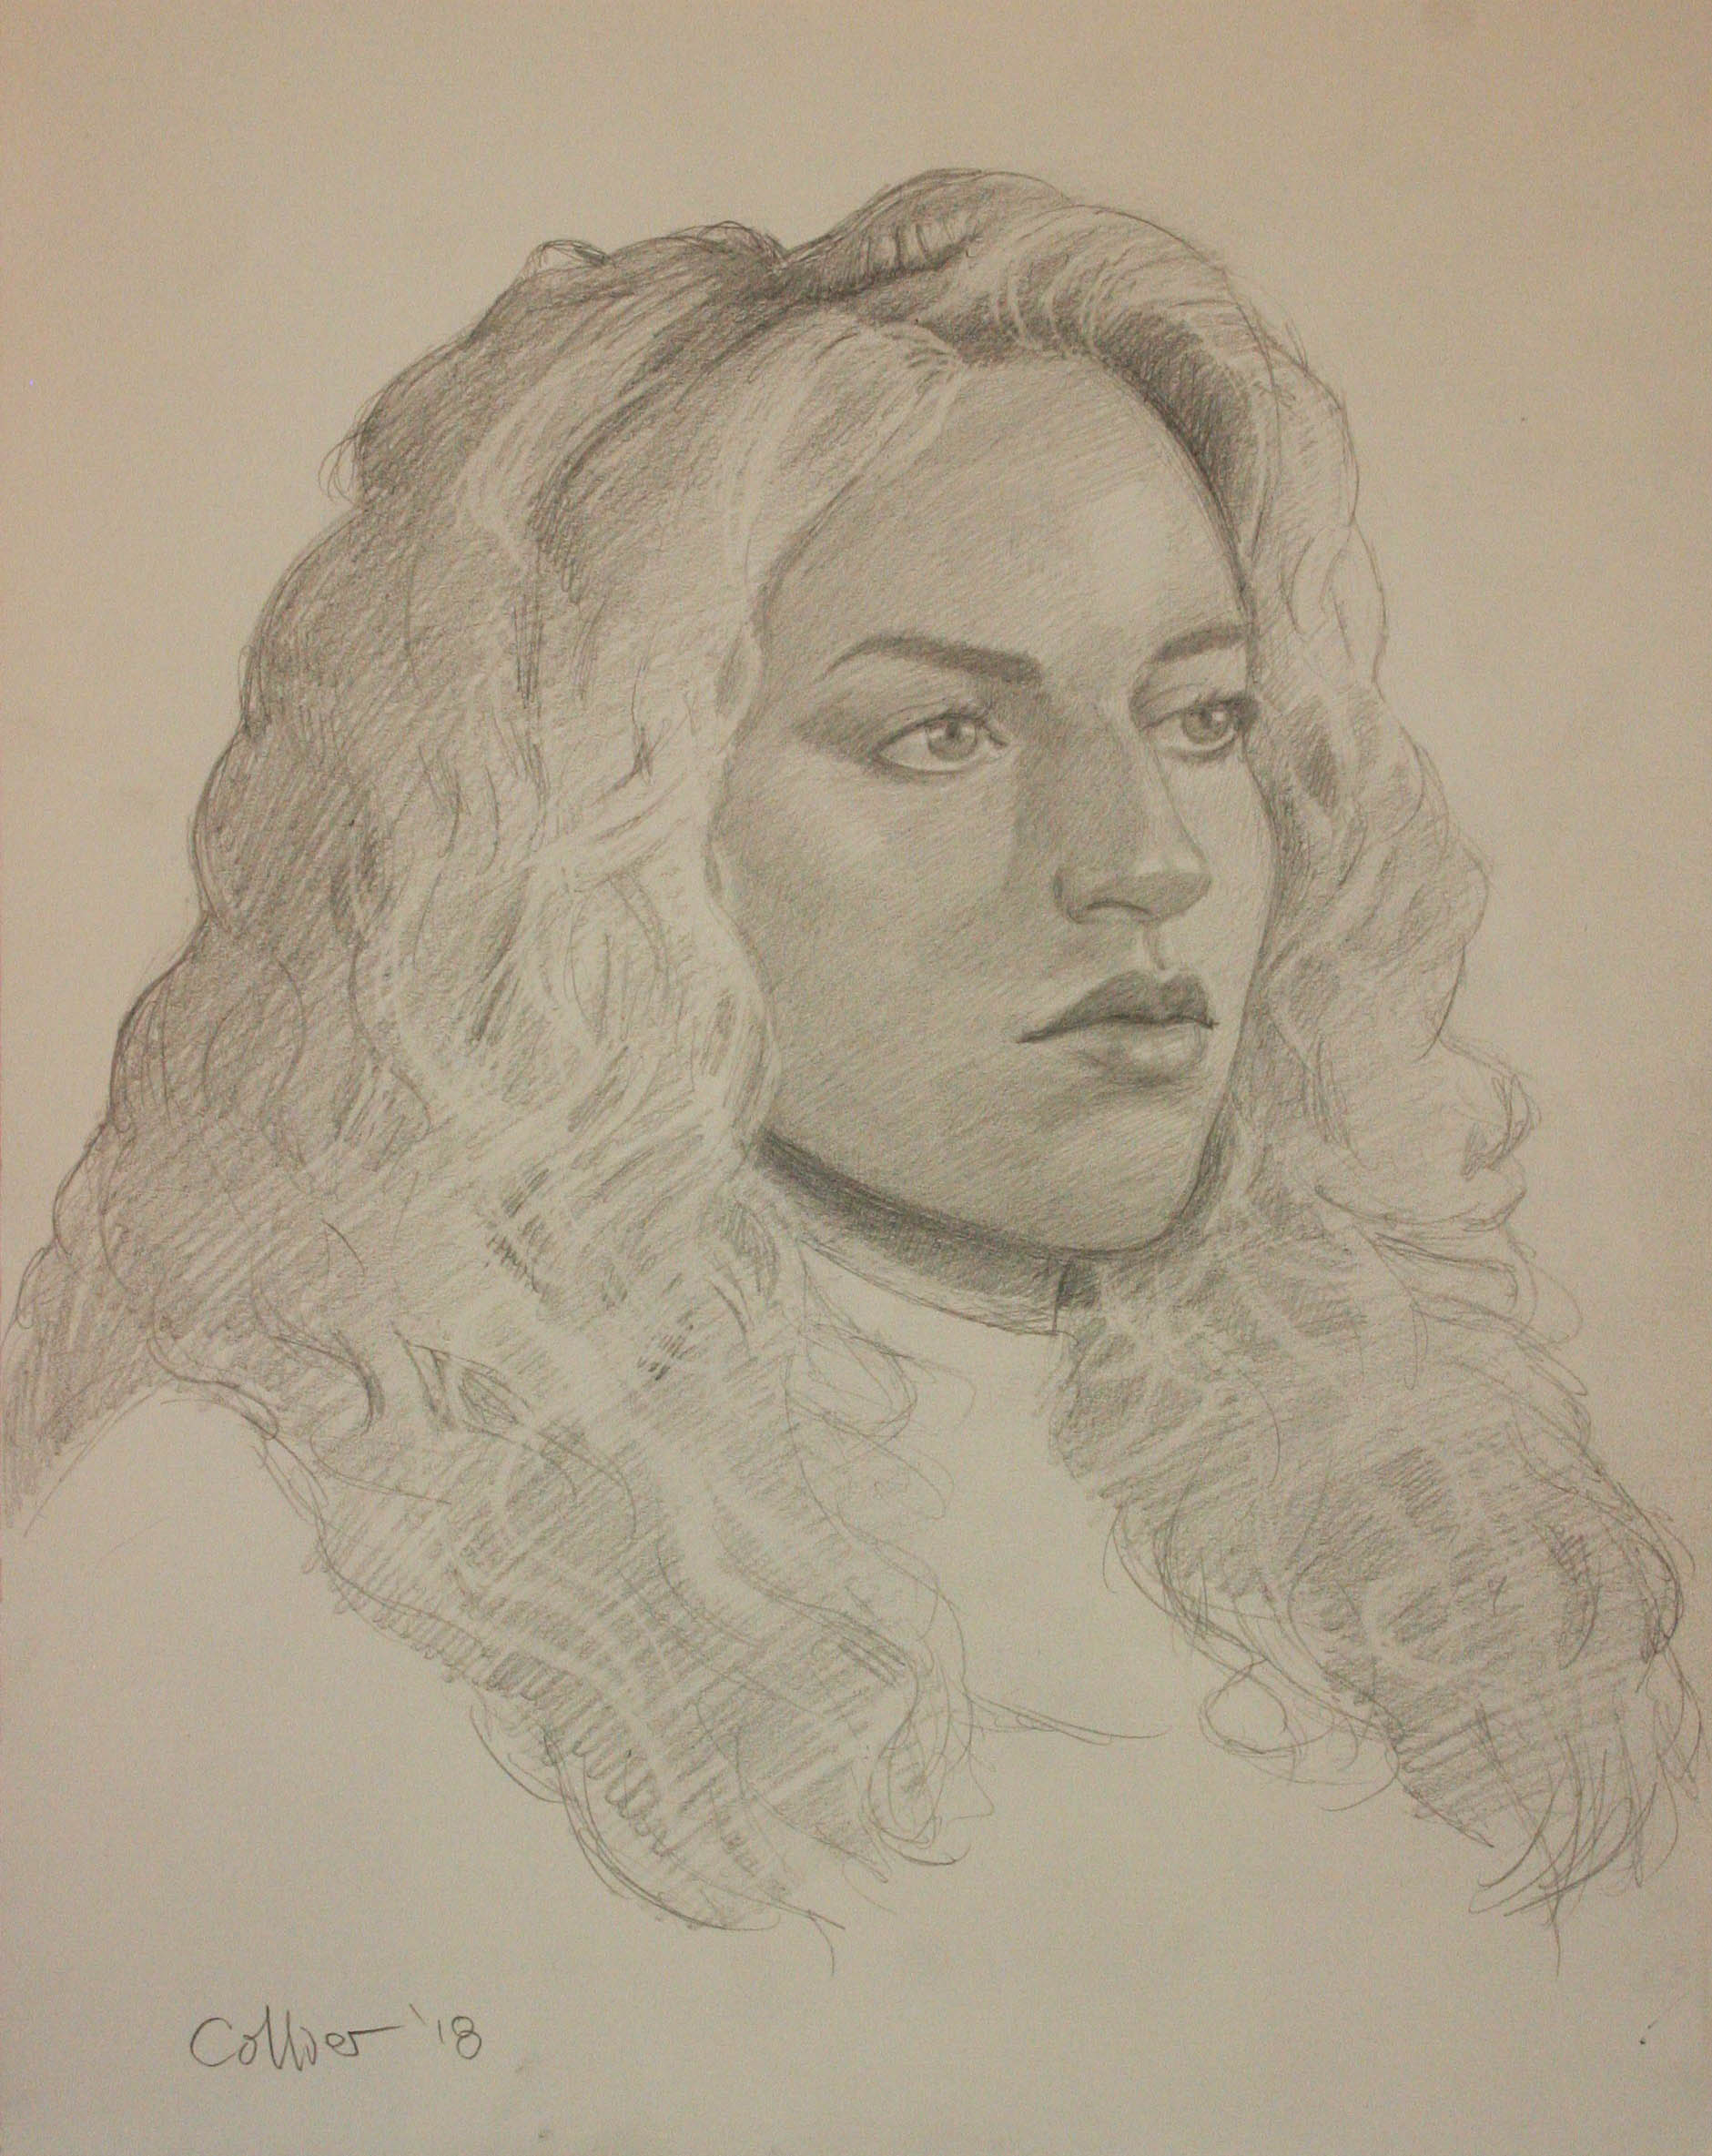 Howard Collier did this pencil drawing.